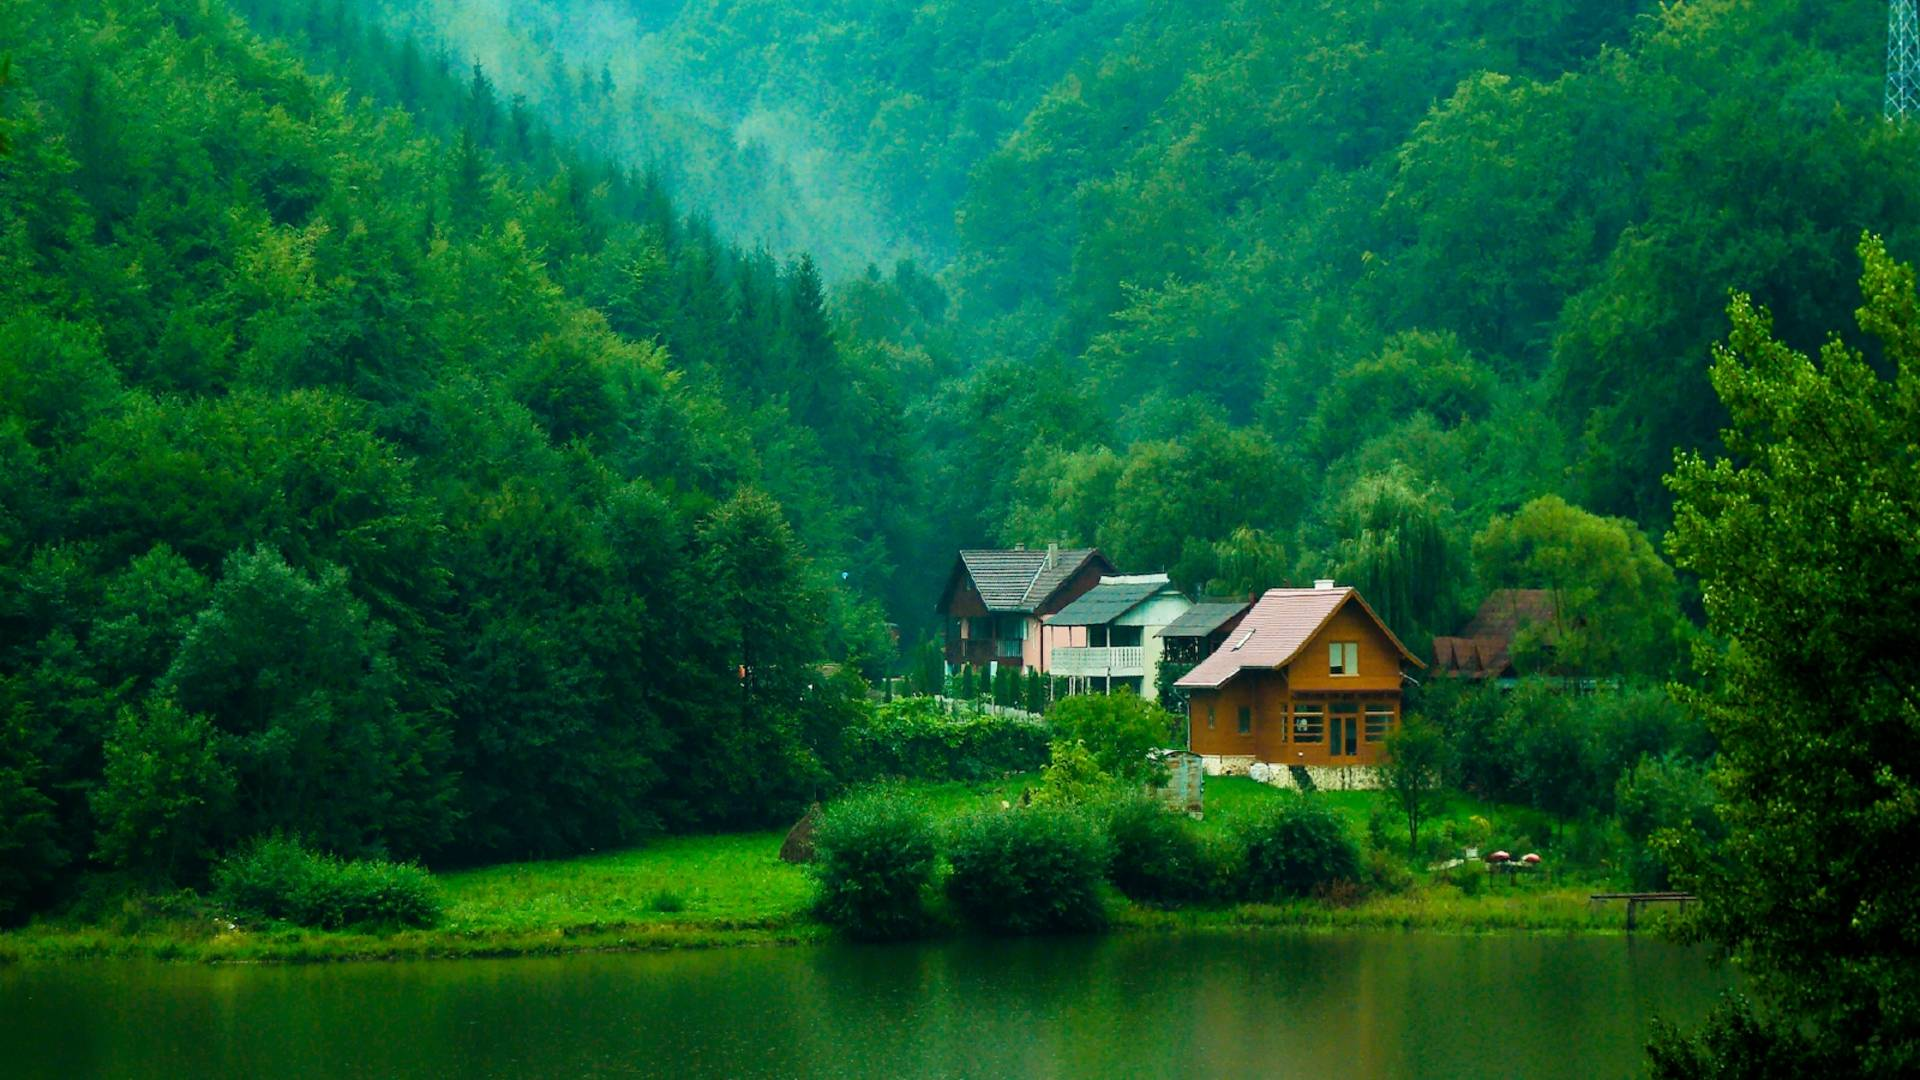 House in the green mountain, House in a mountain forest 817